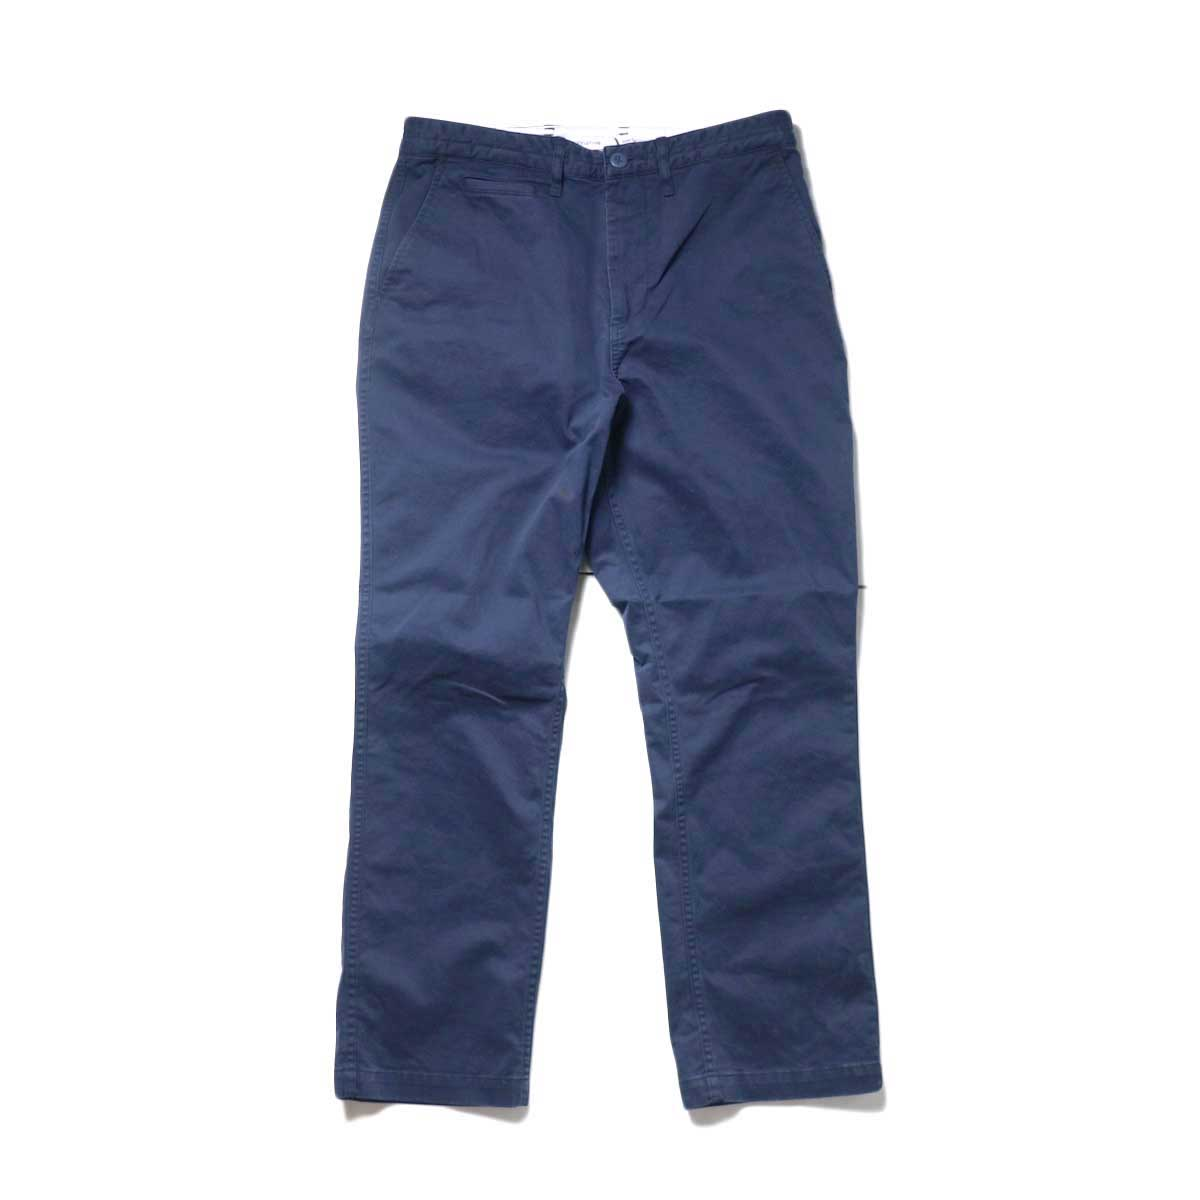 nonnative / DWELLER CHINO TROUSERS USUAL FIT C/P TWILL STRETCH VW (Navy)